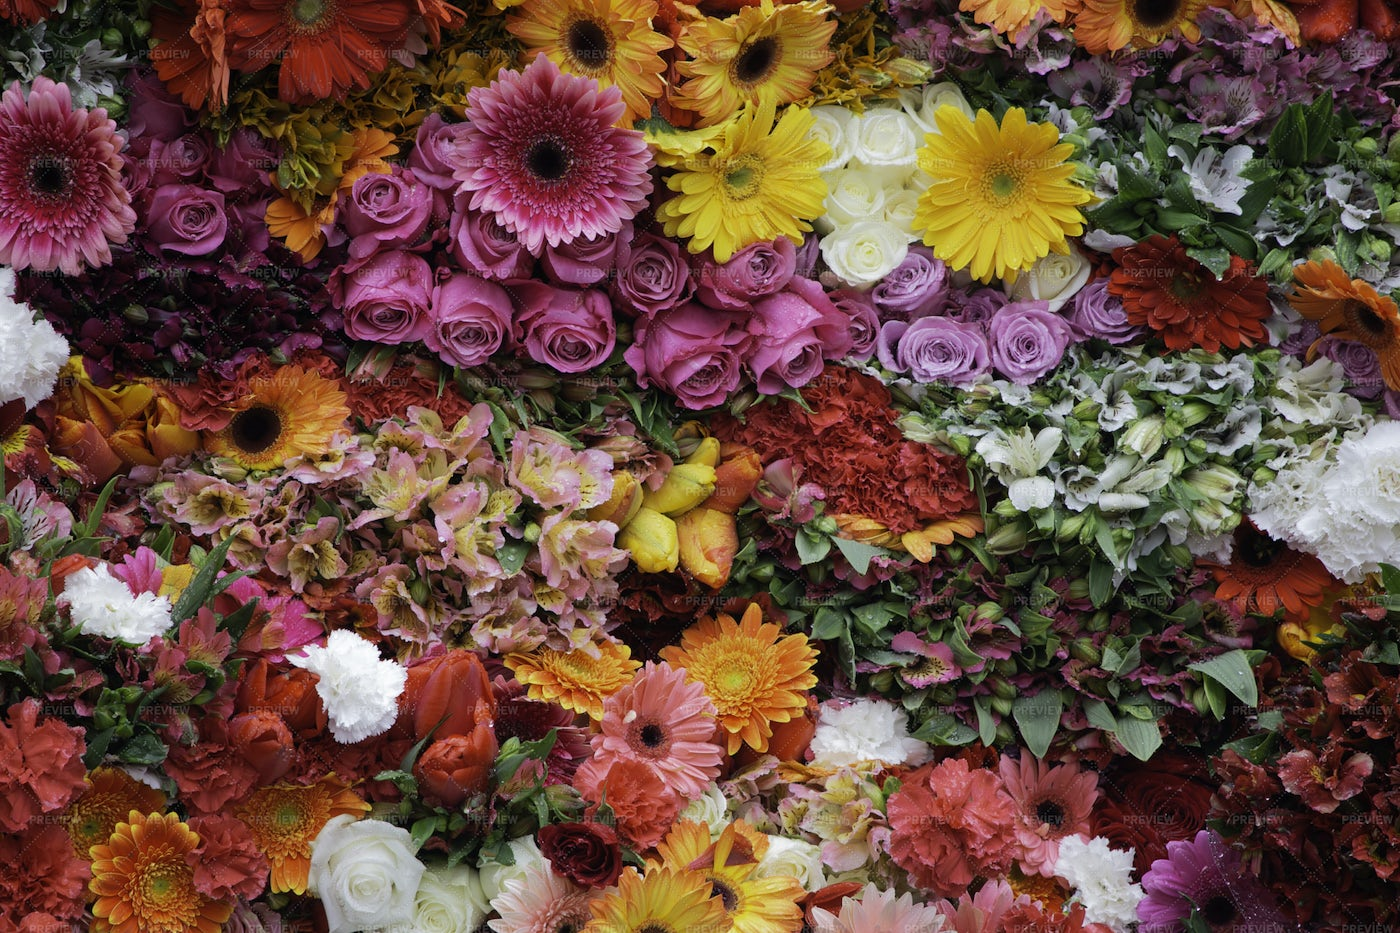 Vast Collection Of Flowers: Stock Photos